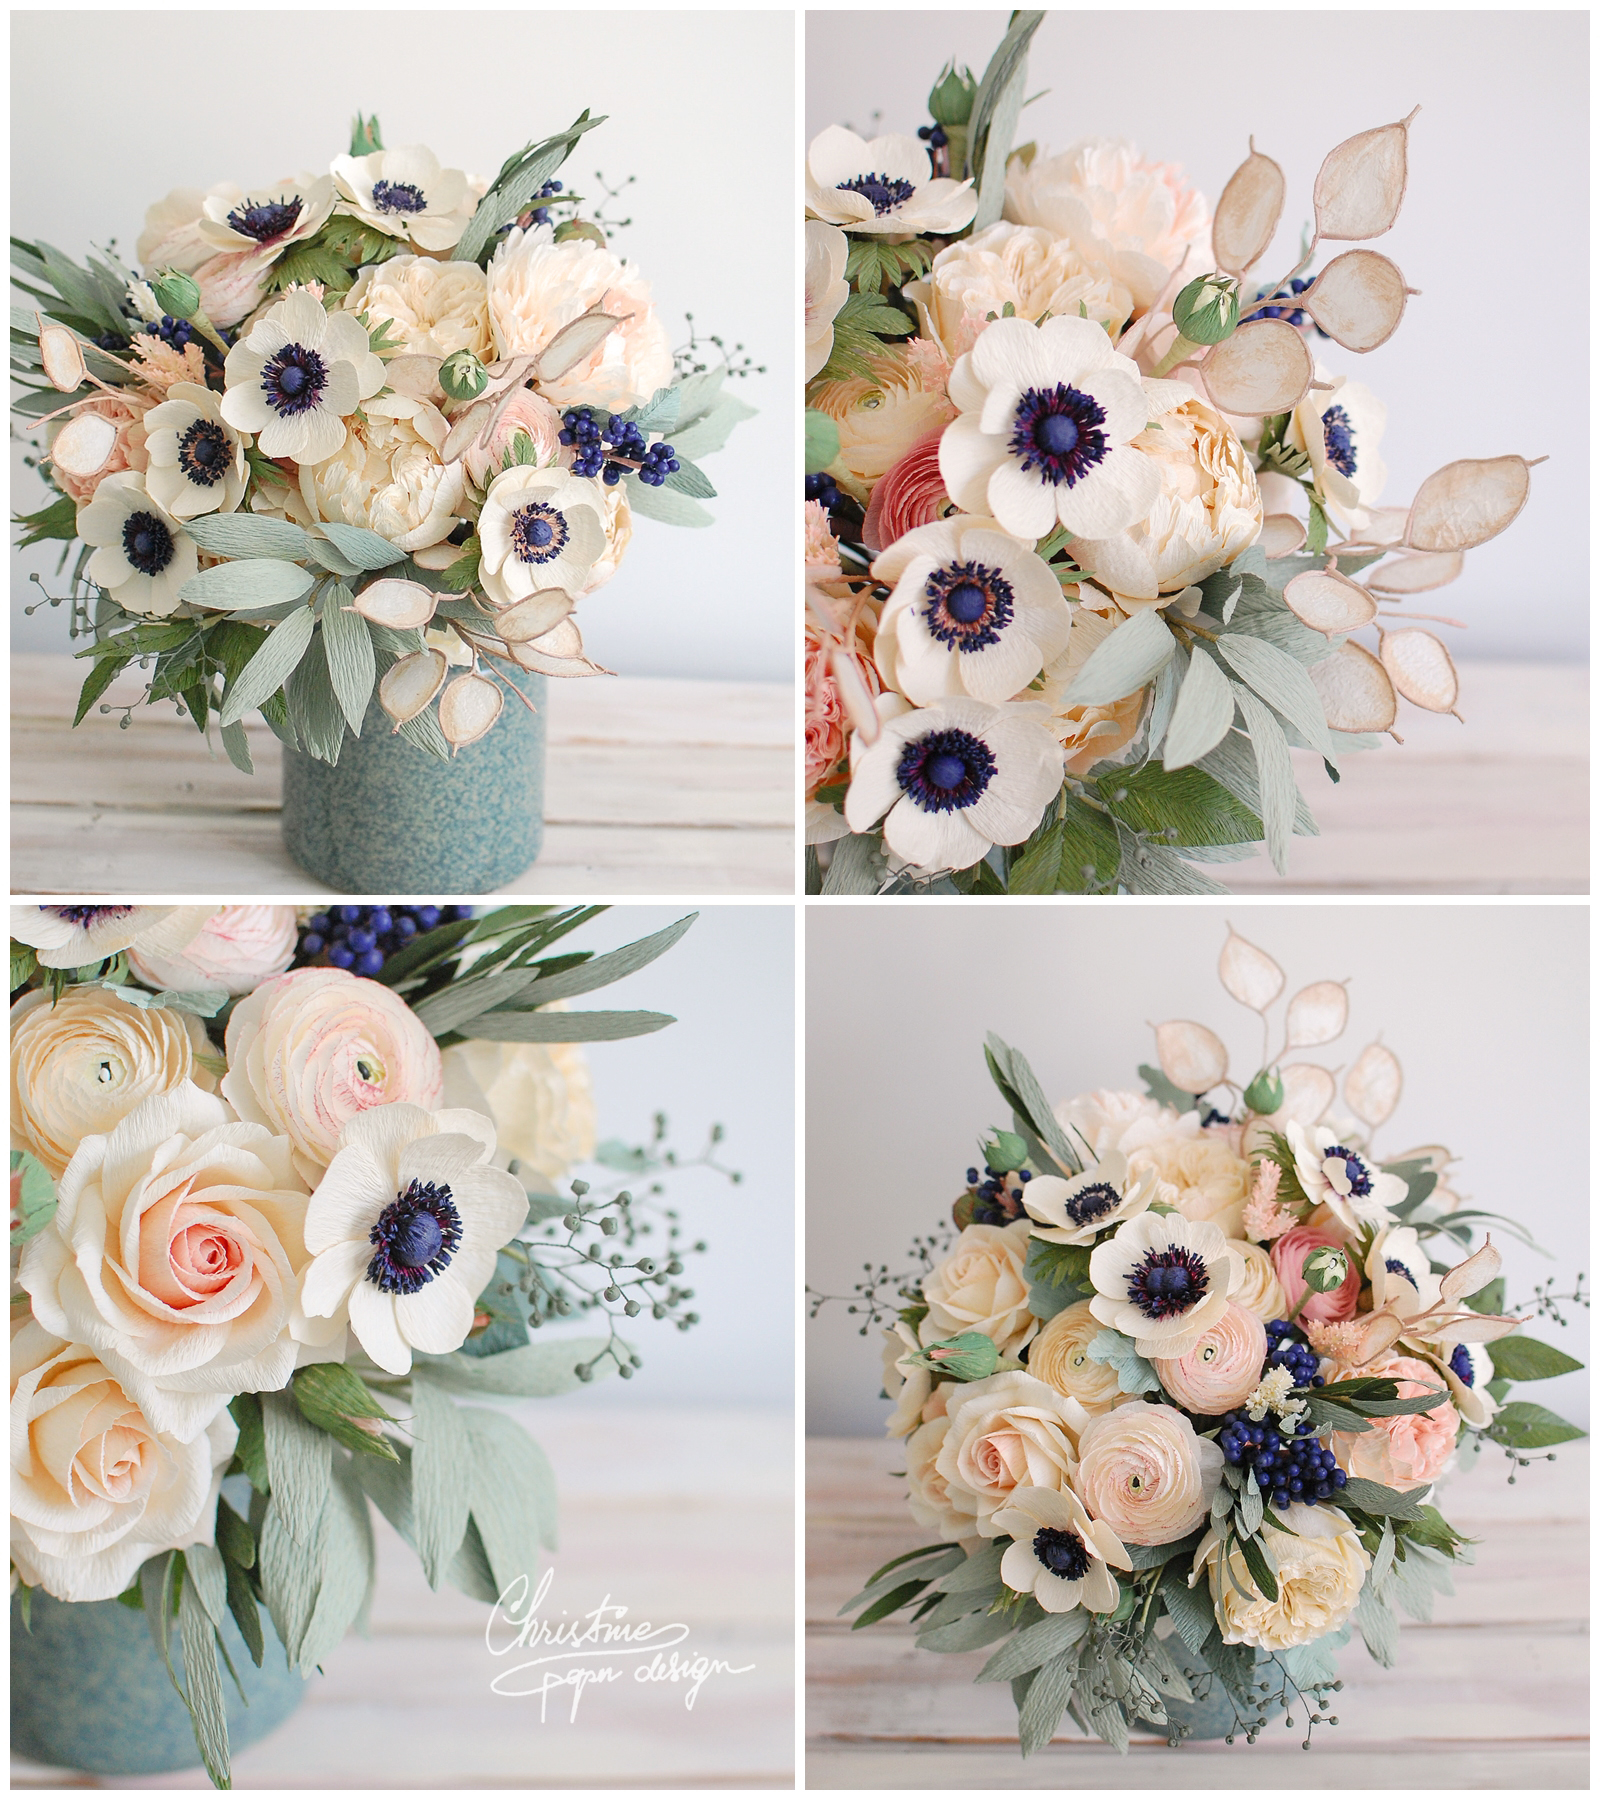 tally's bridal bouquet - Christinepaperdesign (3)